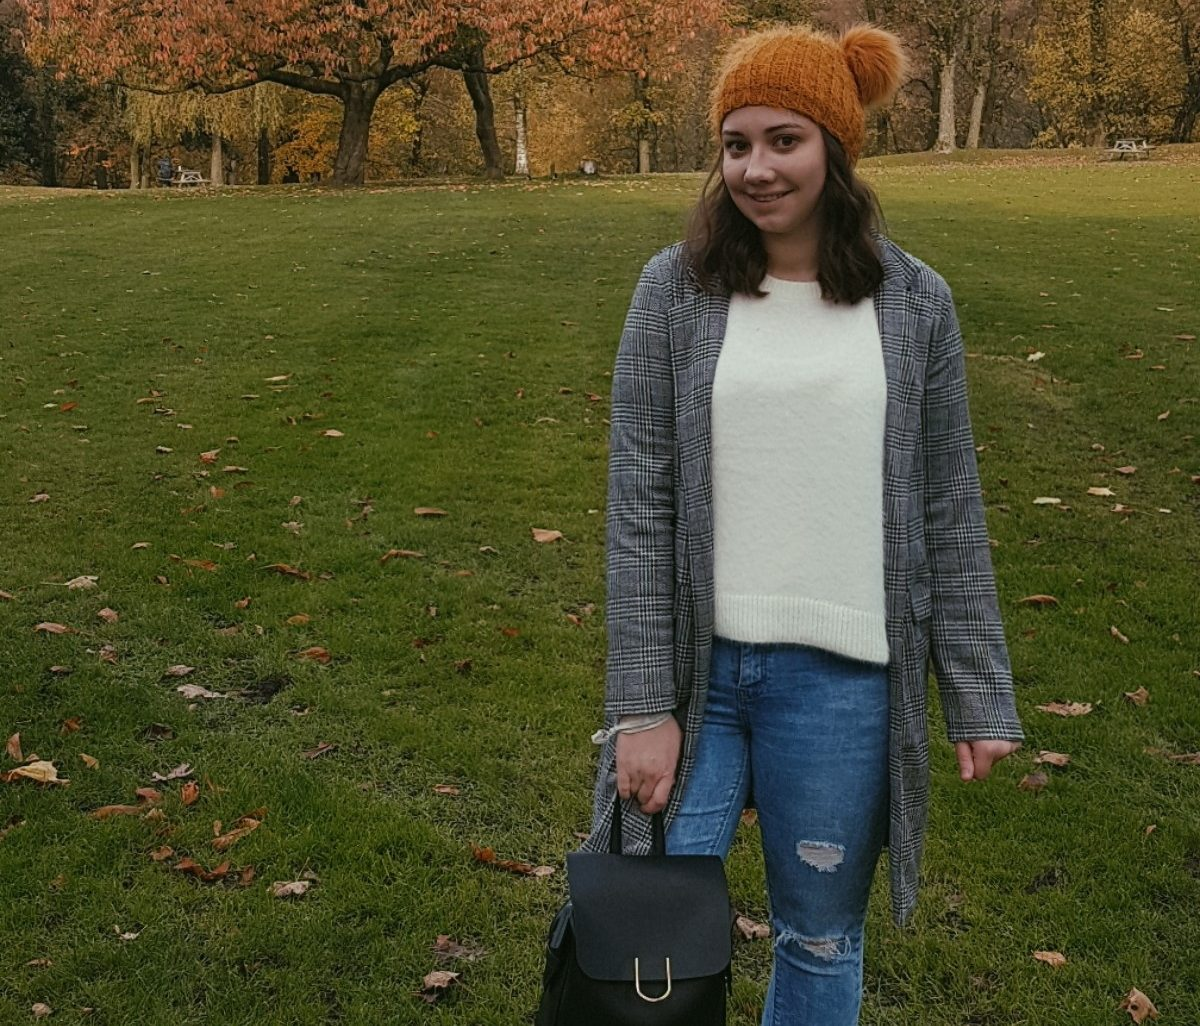 Outfit Of The Day #14 | Autumn In The Park